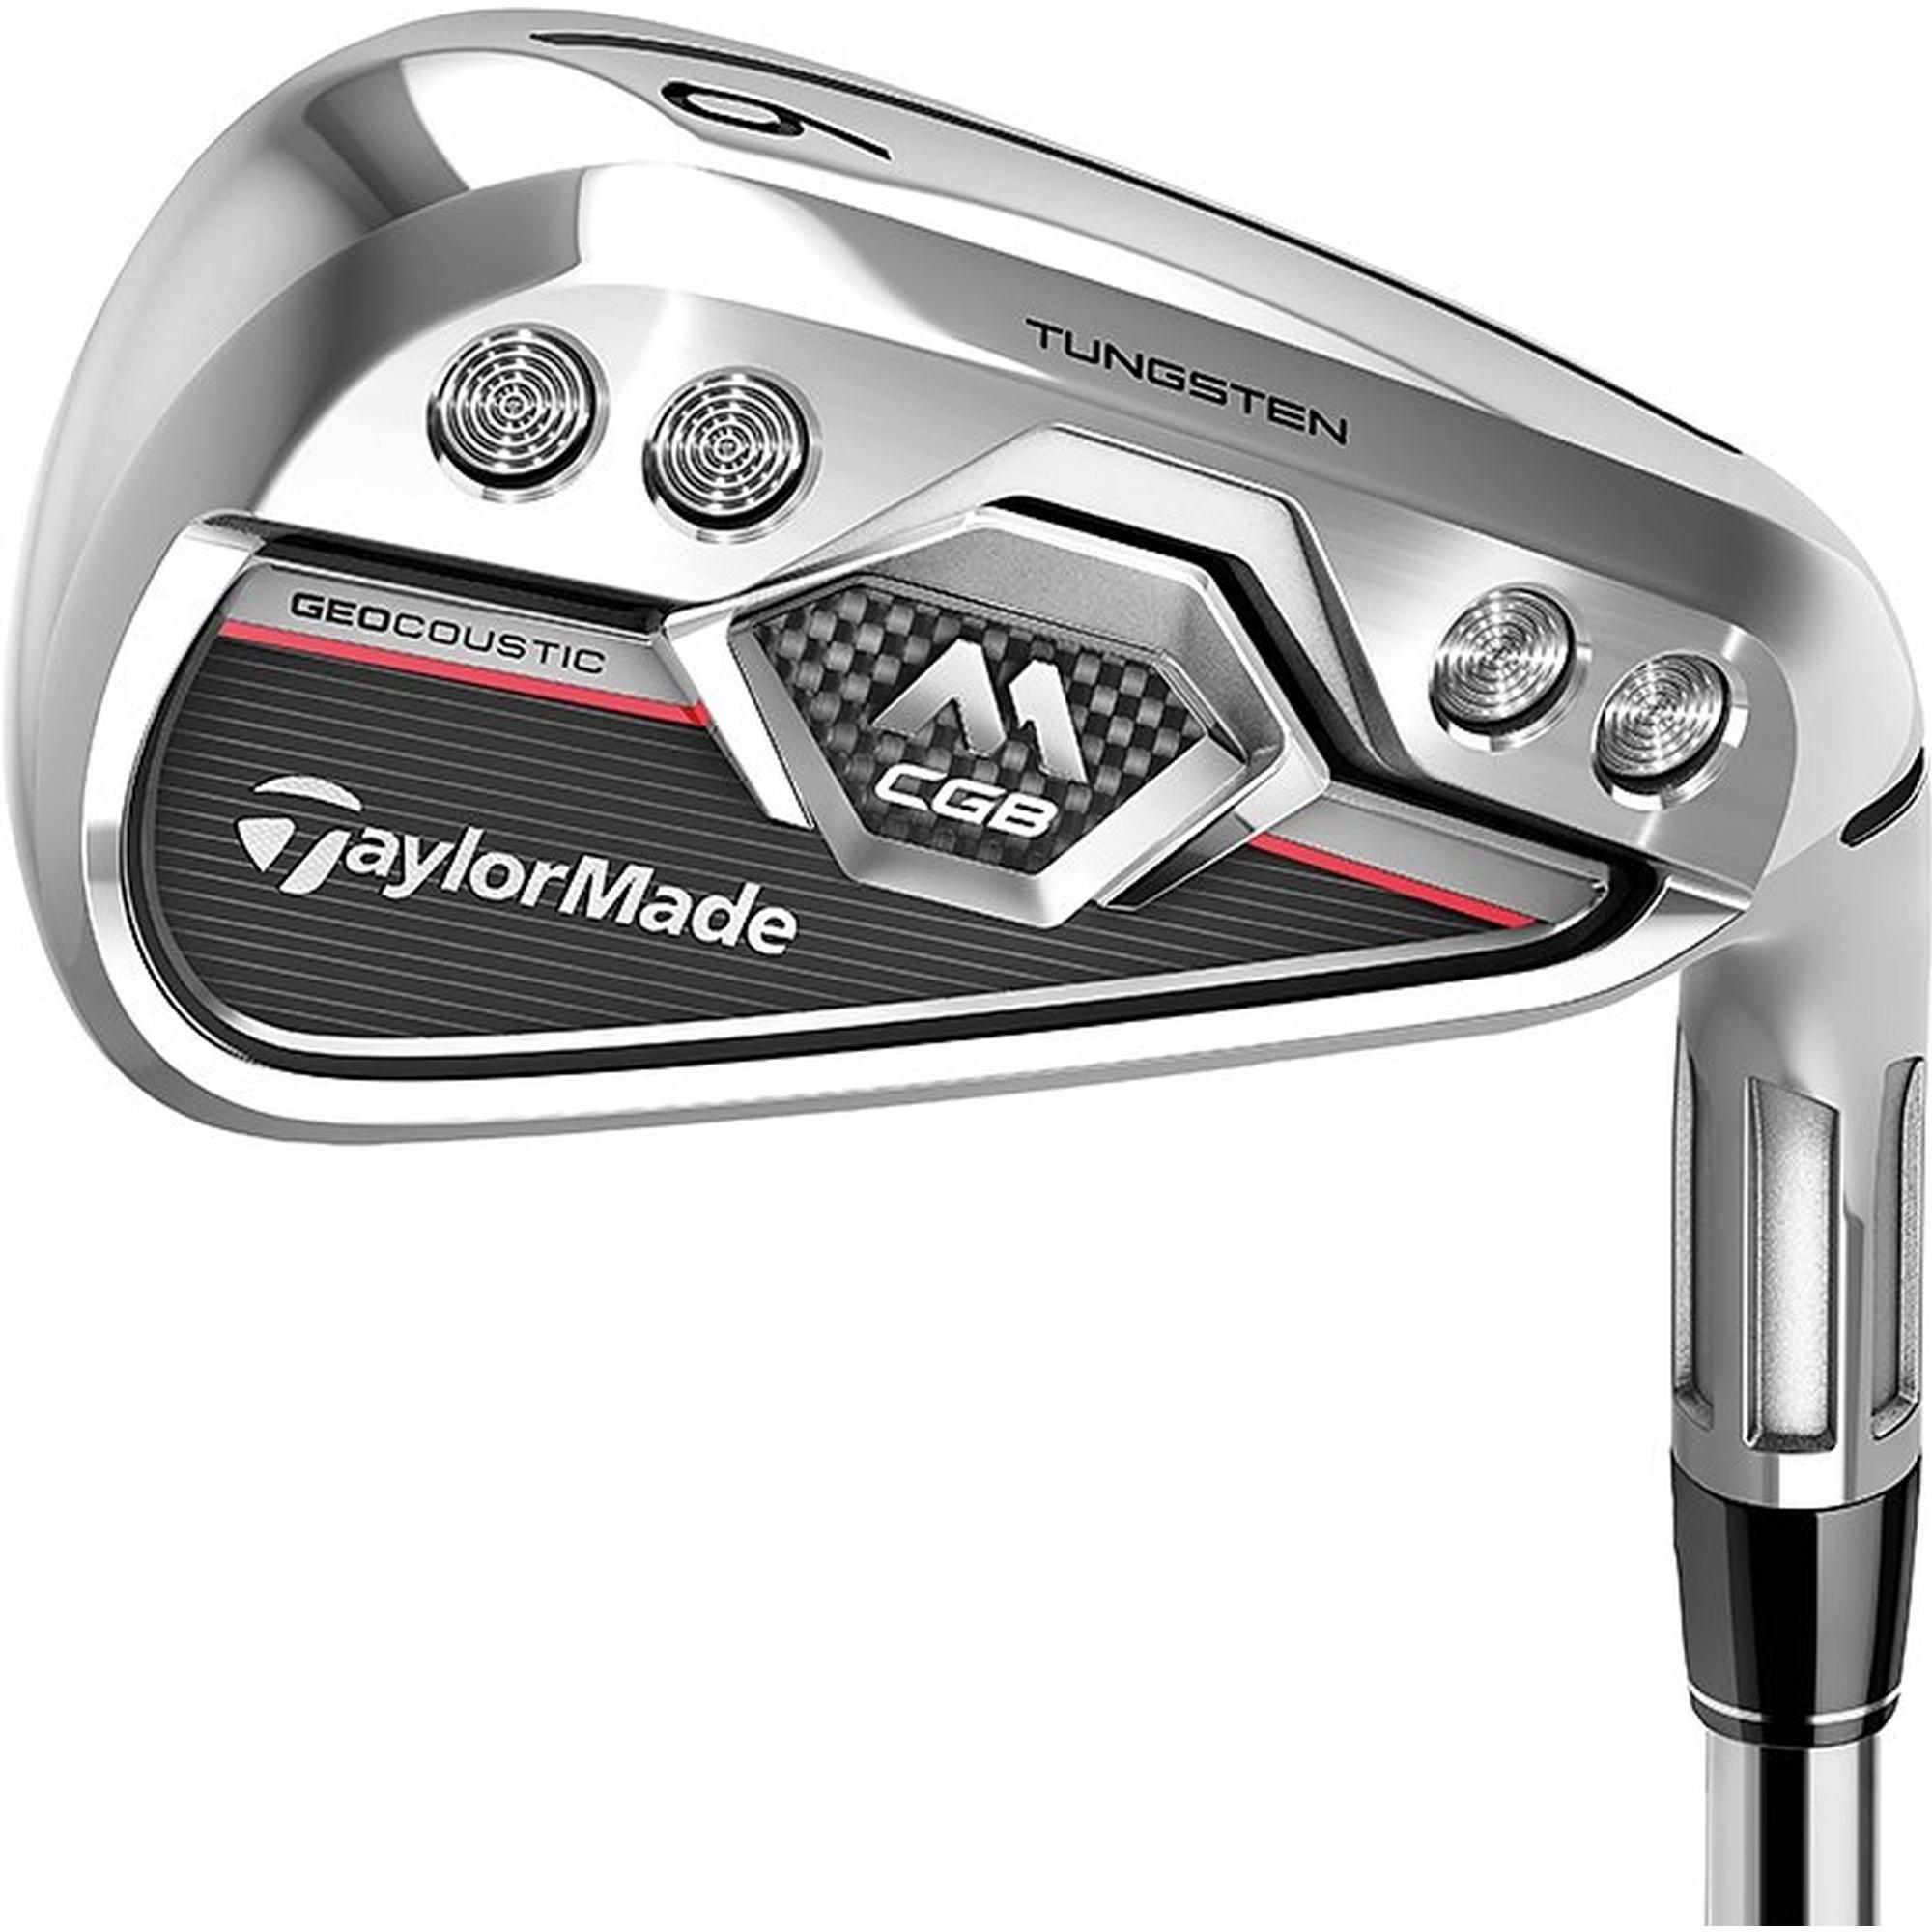 M CGB 4-PW, AW Iron Set with Graphite Shafts